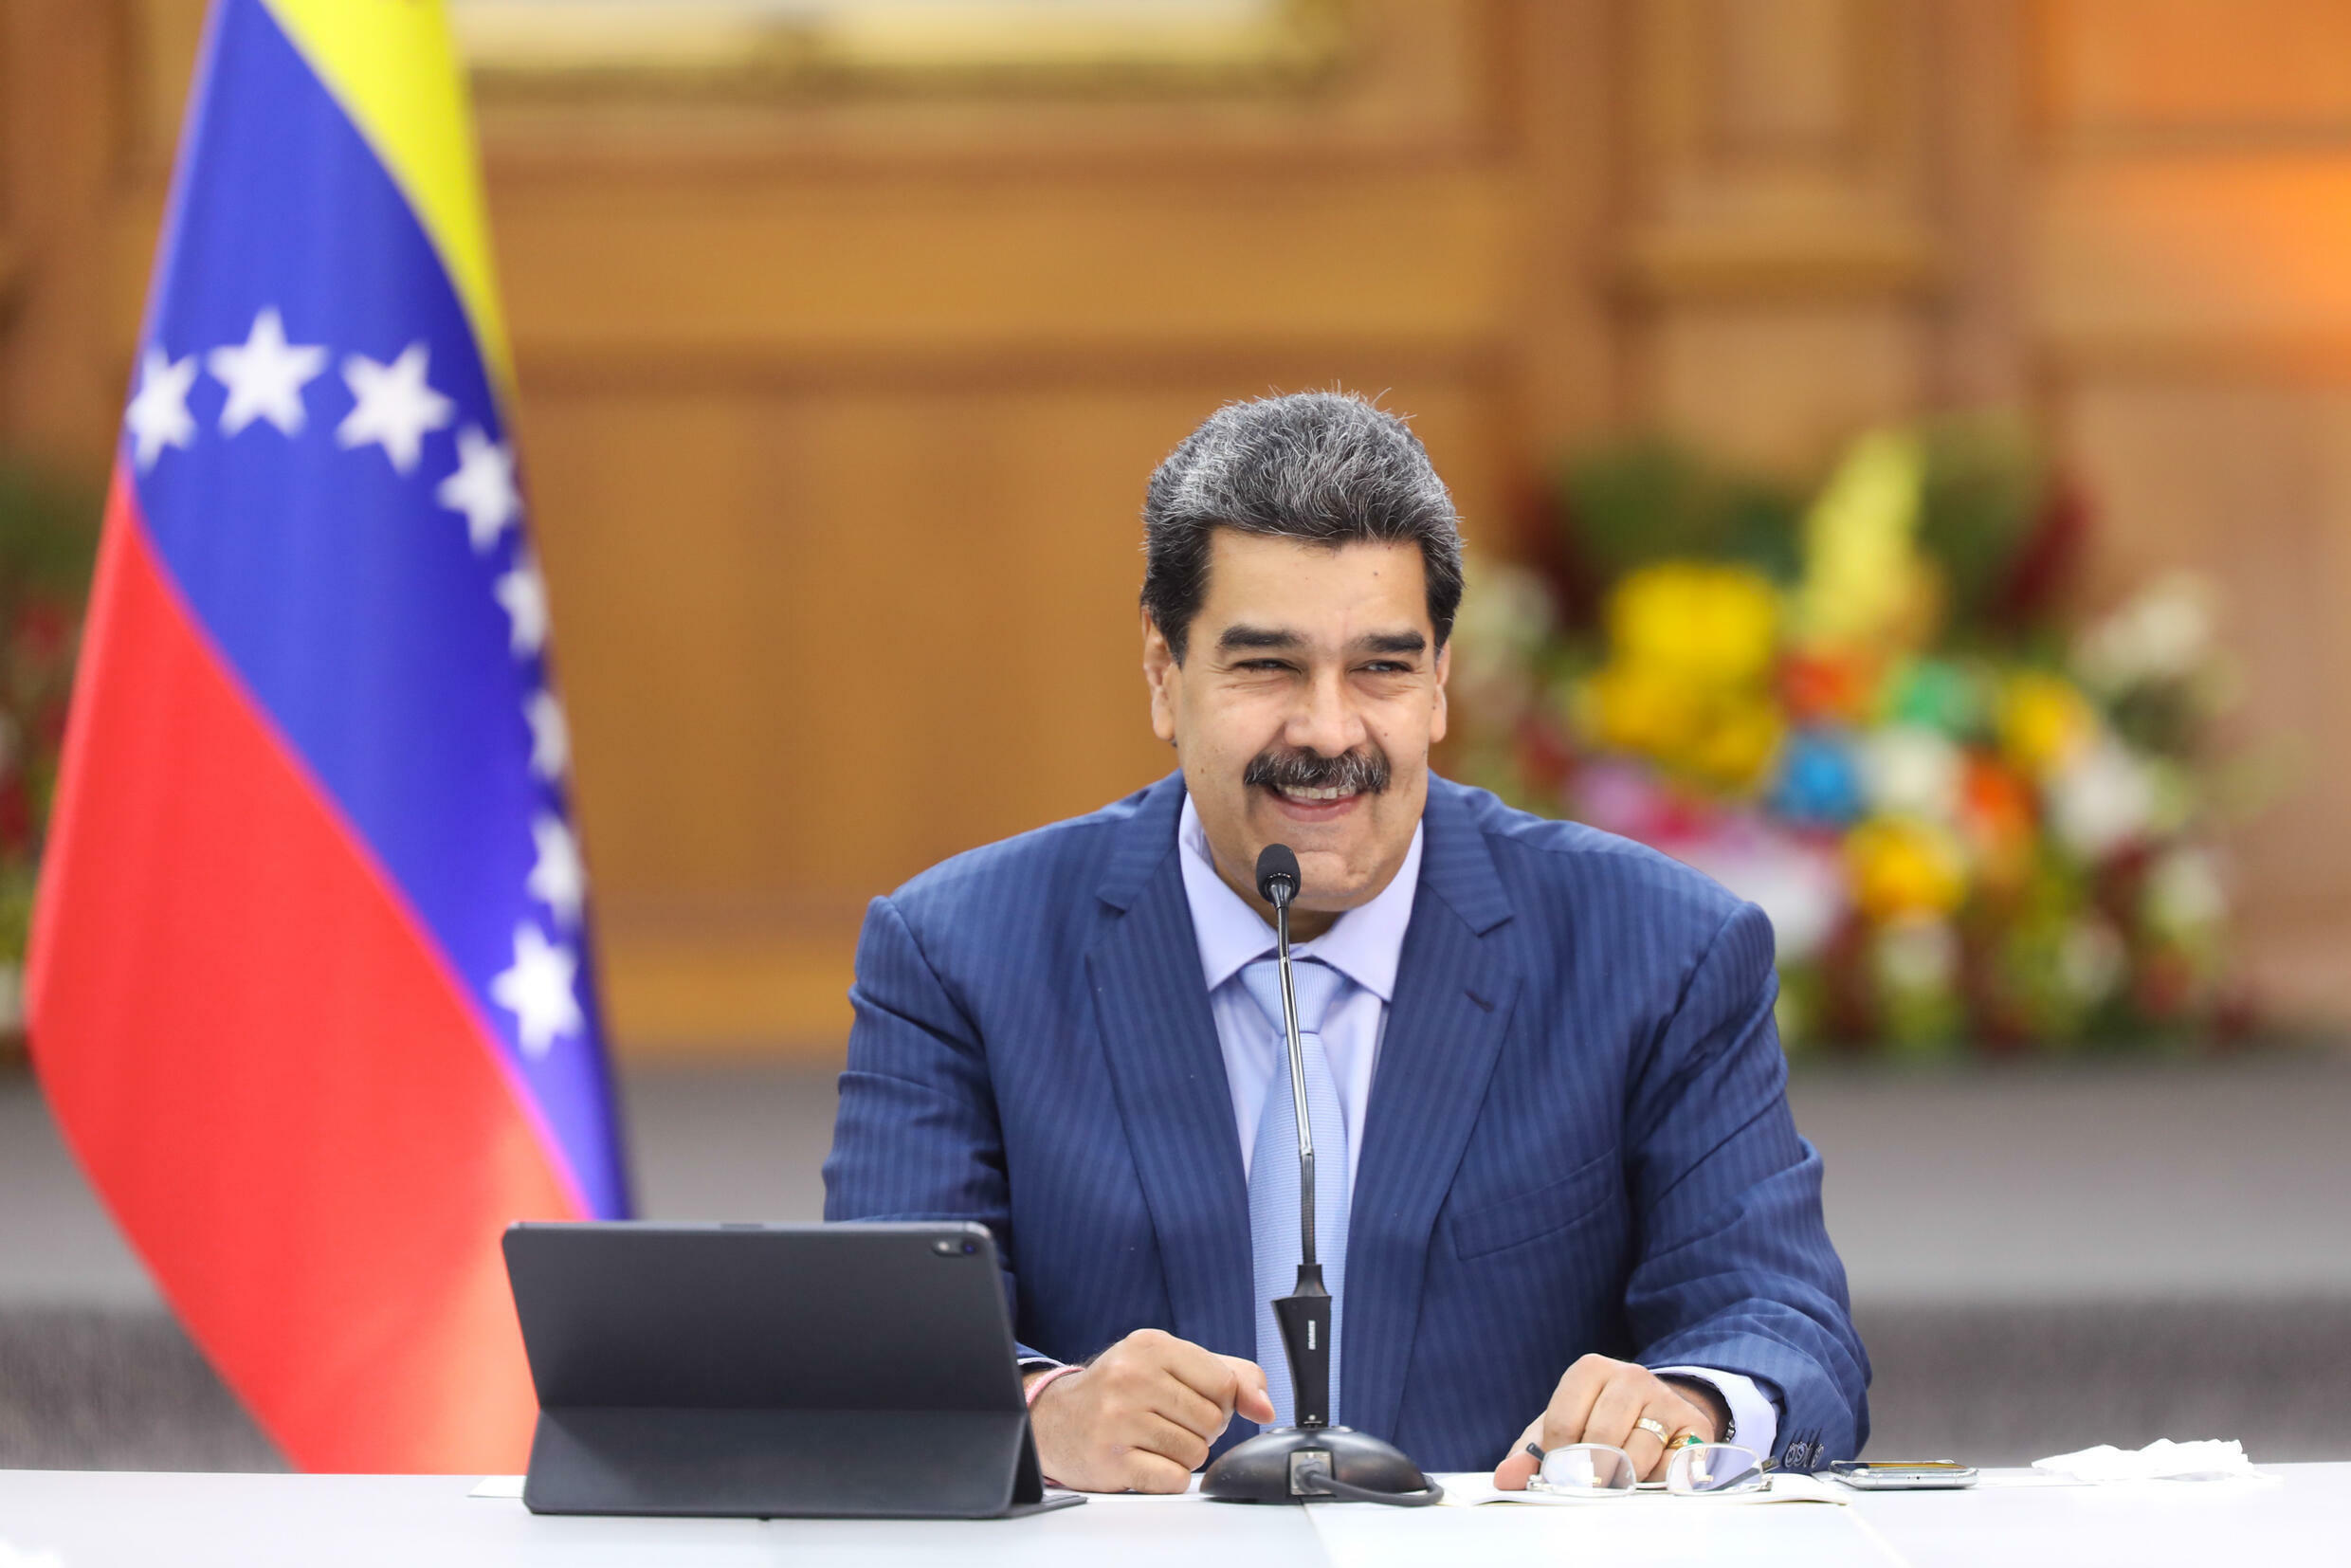 Venezuelan President Nicolas Maduro's re-election in 2018 has not been recognized by either the opposition at home or by around 60 other countries